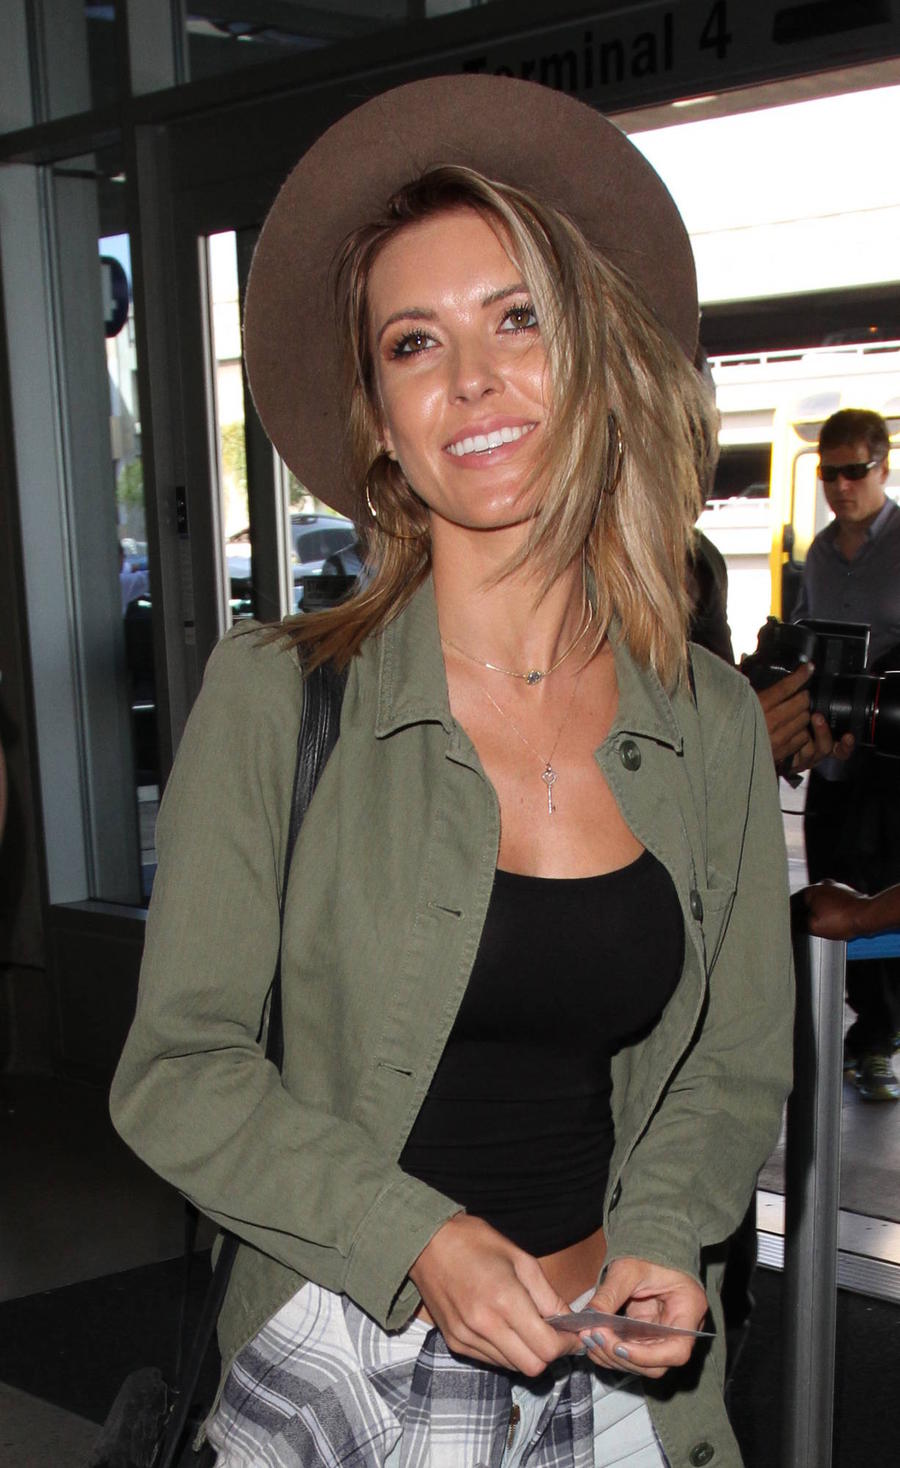 Audrina Patridge Blasted Rock Music During Scary C-section Birth